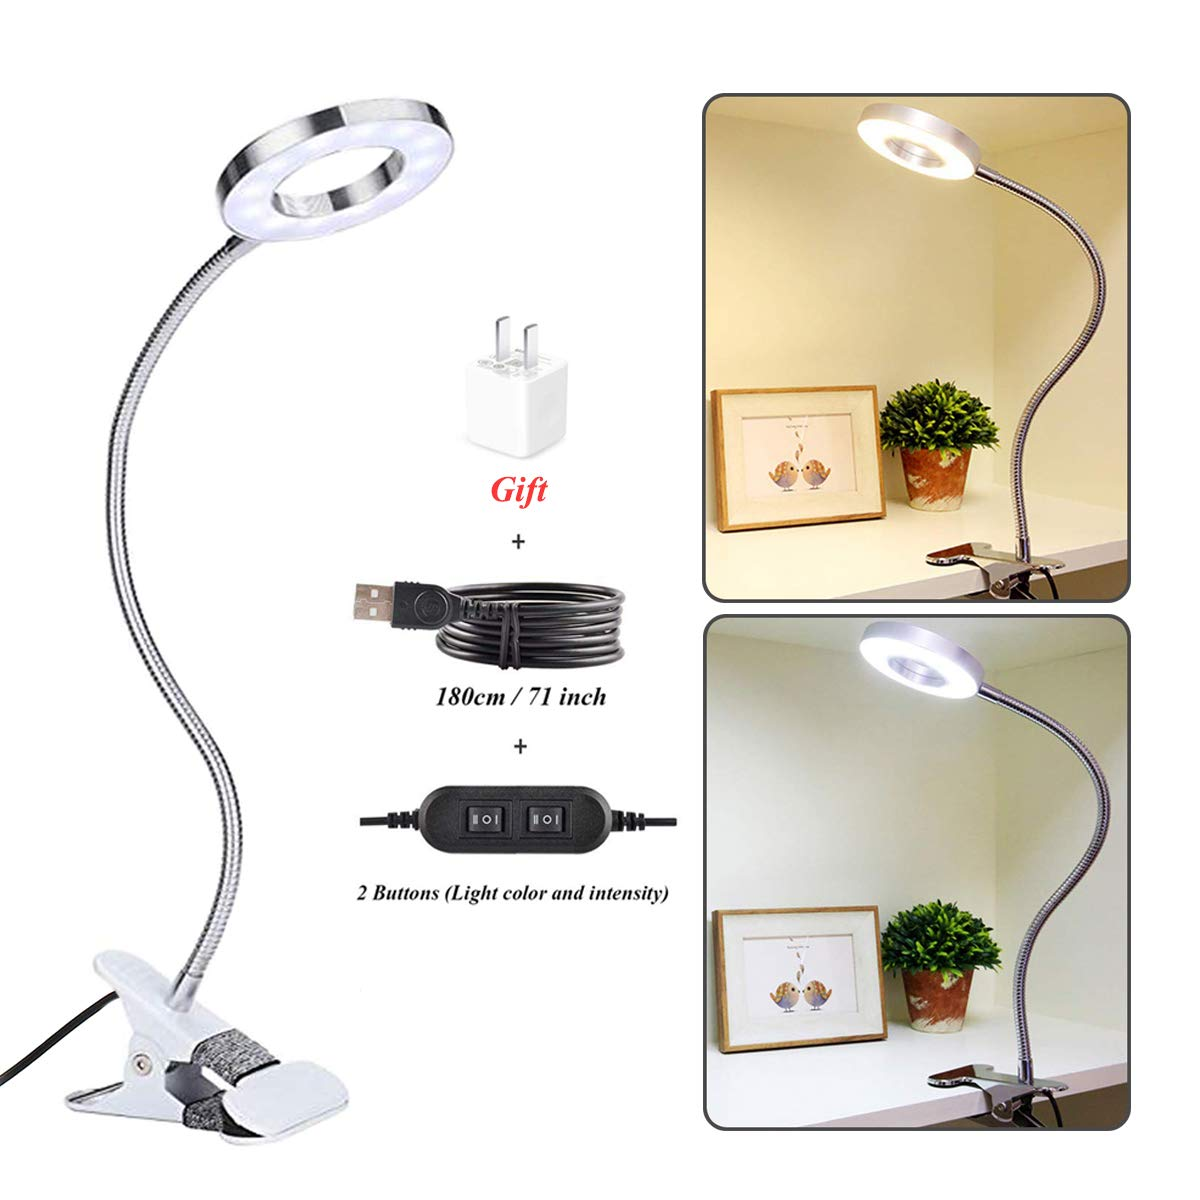 CLOOOUDS 7W Clip on Light, Eyelash Extension Light, LED Clip On Lamp, USB Eye-Care Book Light, Bed Lamp, Tattoo,Nail Art, Makeup Desk lamp, Warm Light and White Light, Adapter Included